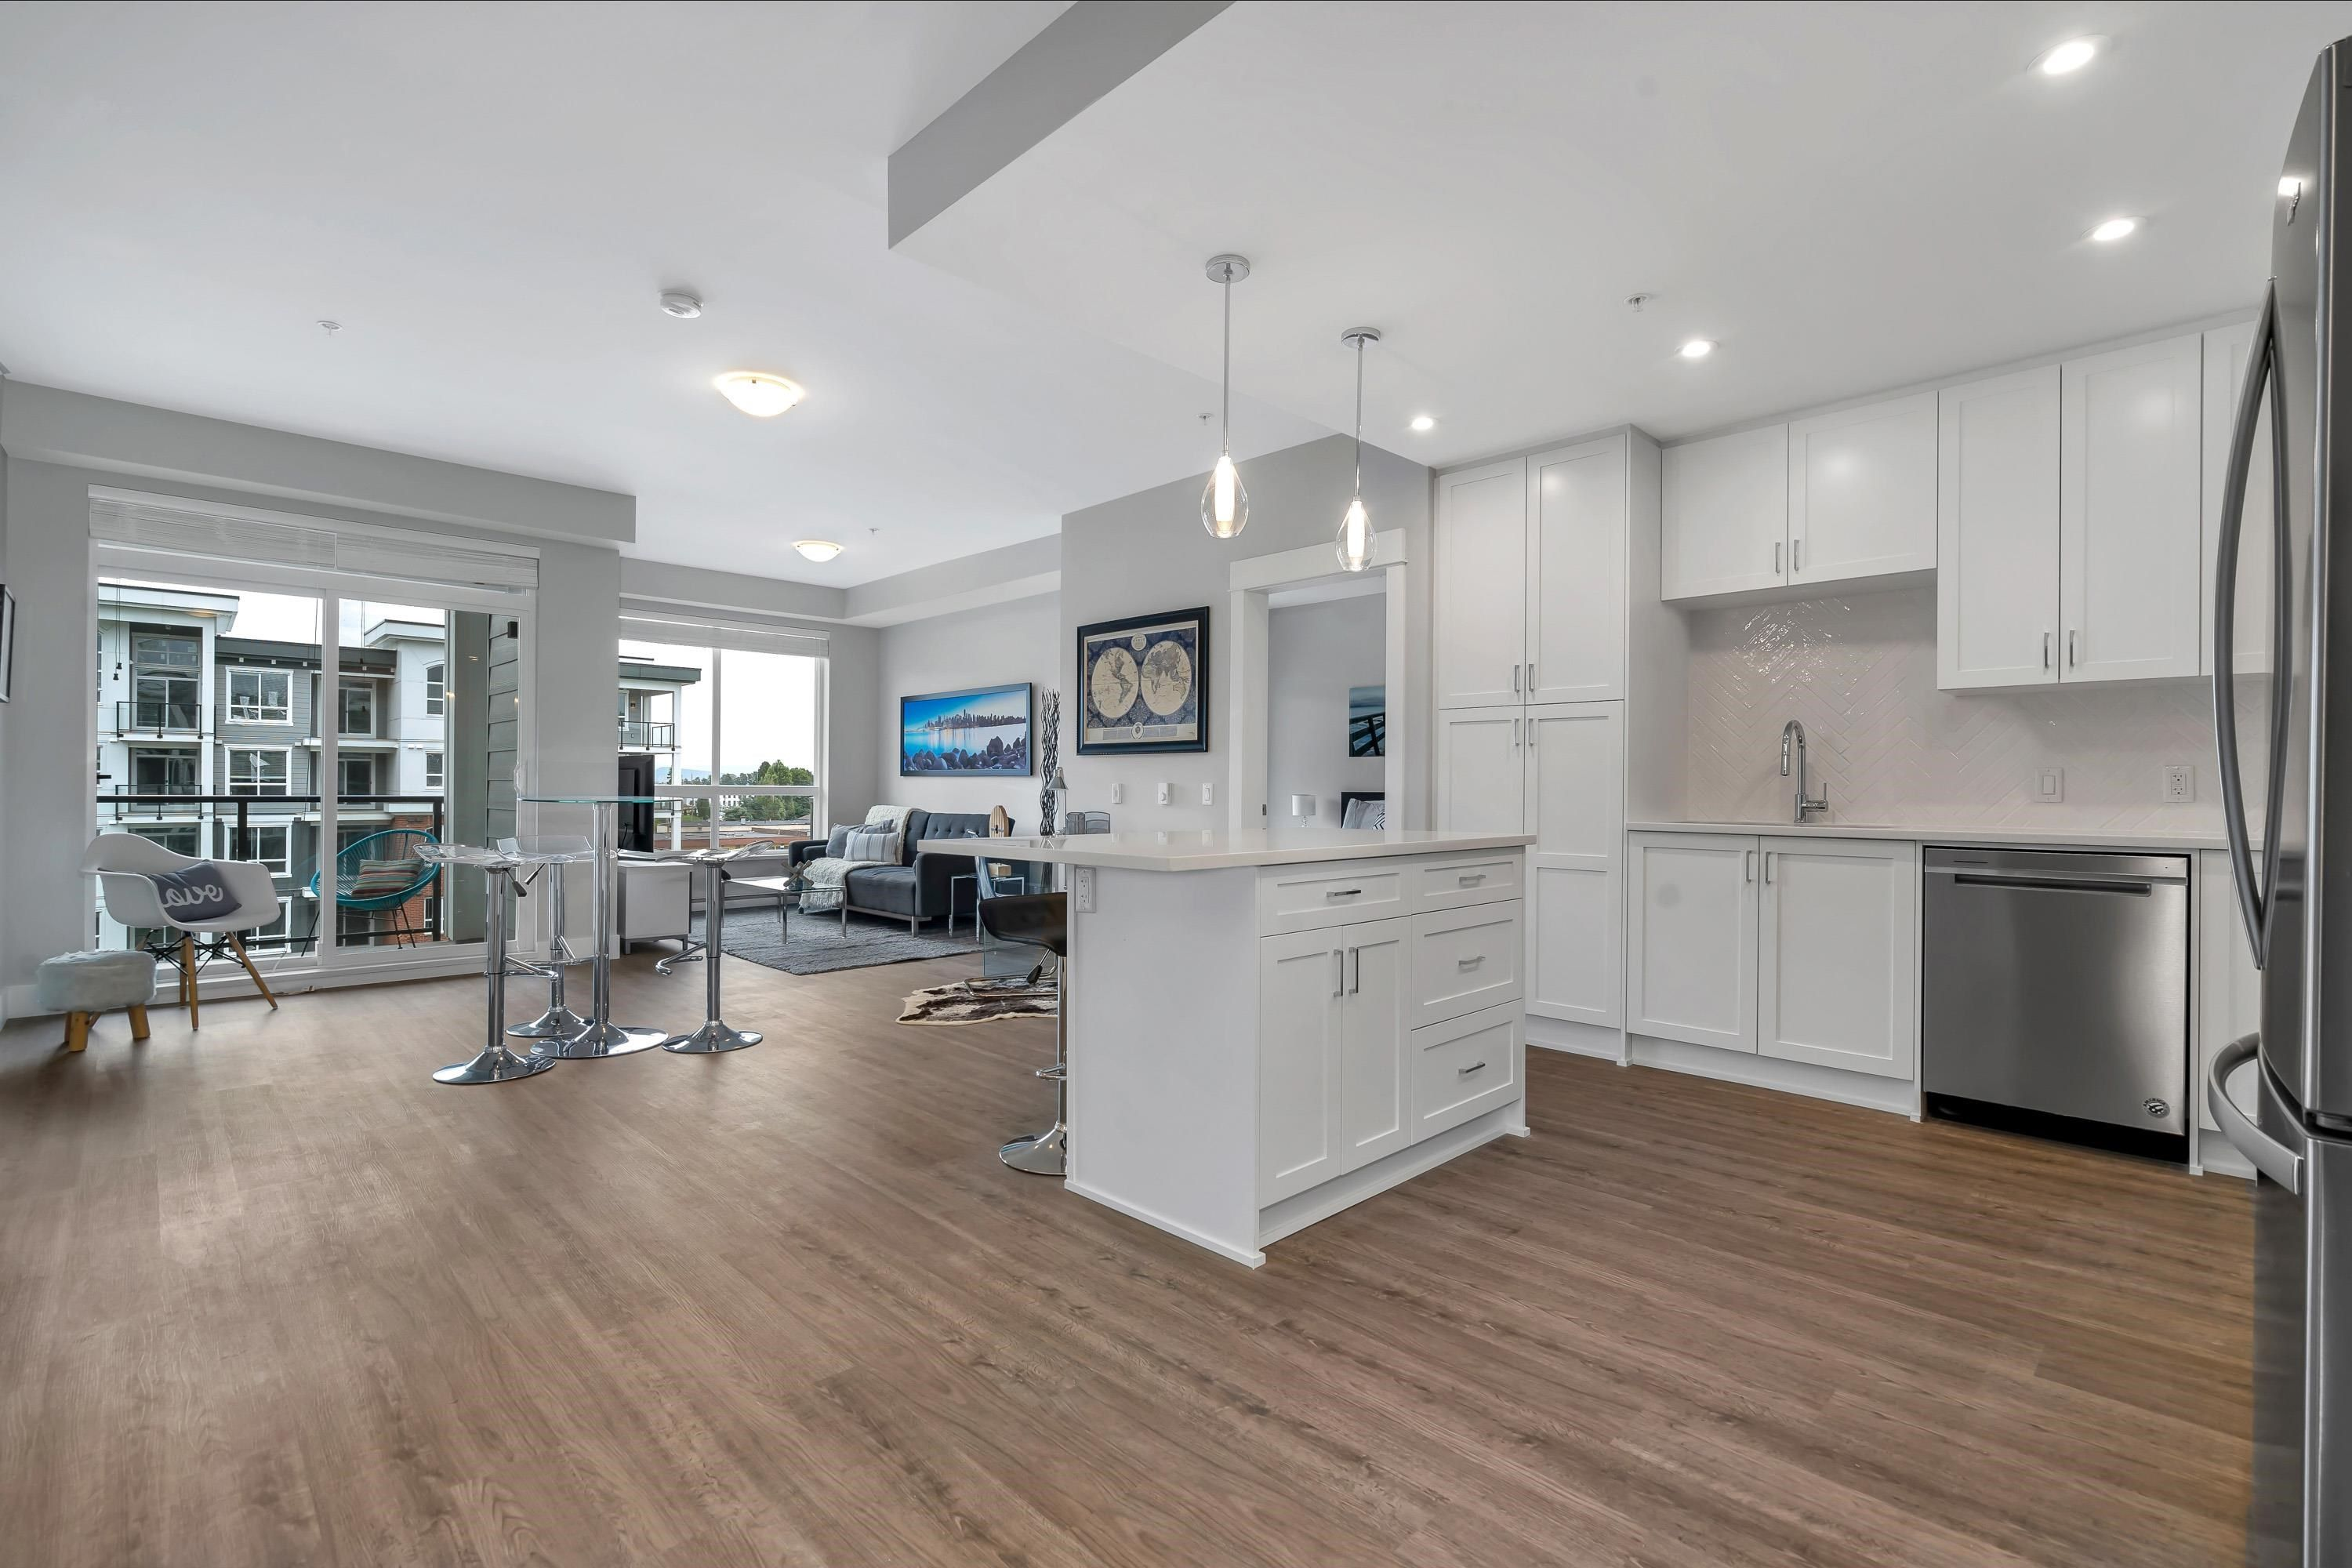 """Main Photo: 4515 2180 KELLY Avenue in Port Coquitlam: Central Pt Coquitlam Condo for sale in """"Montrose Square"""" : MLS®# R2614921"""